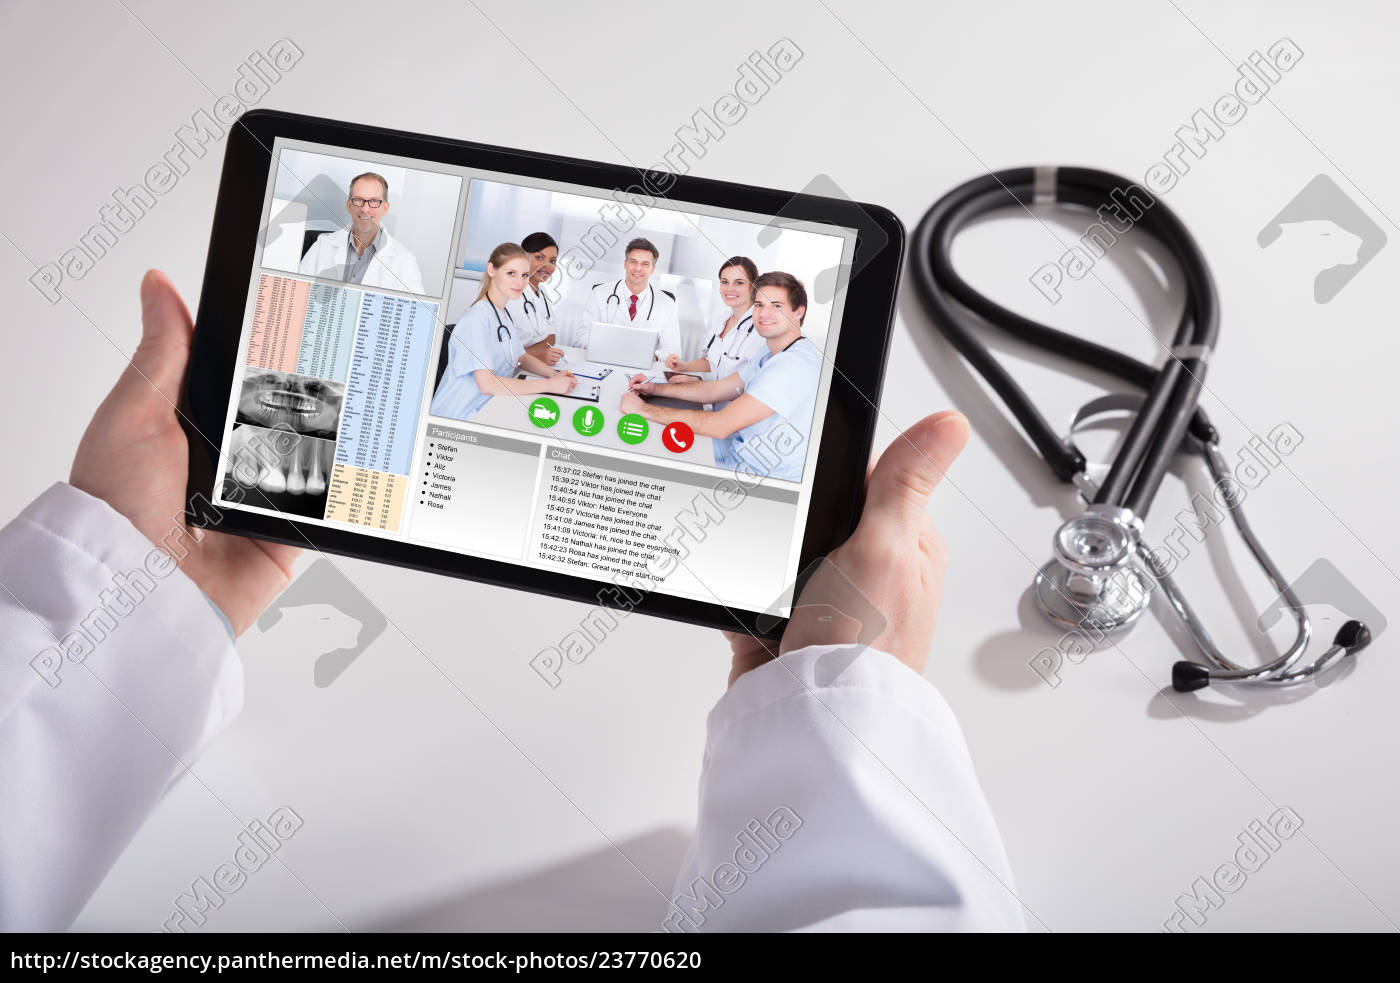 Royalty free photo 23770620 - Doctor Video Conferencing With Medical Team  On Digital Tablet